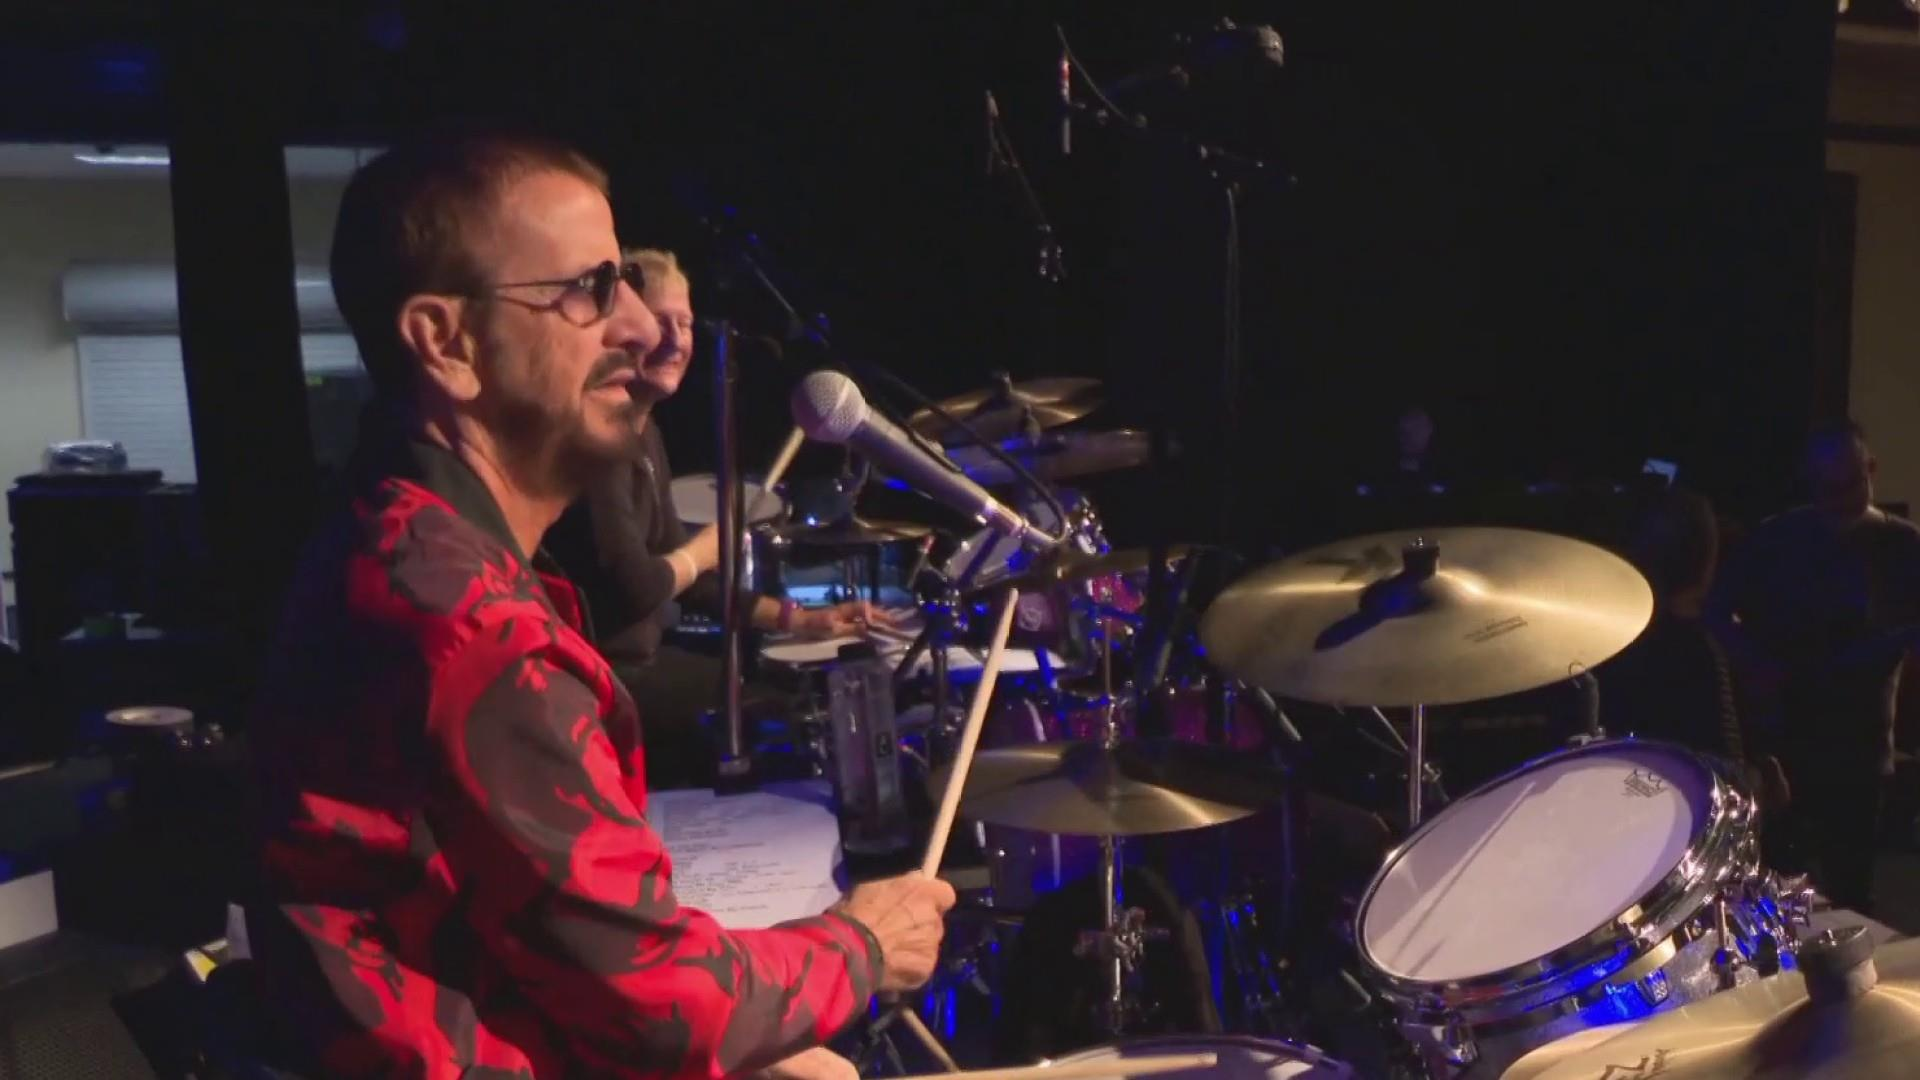 Ringo Starr says new album likely to be his last